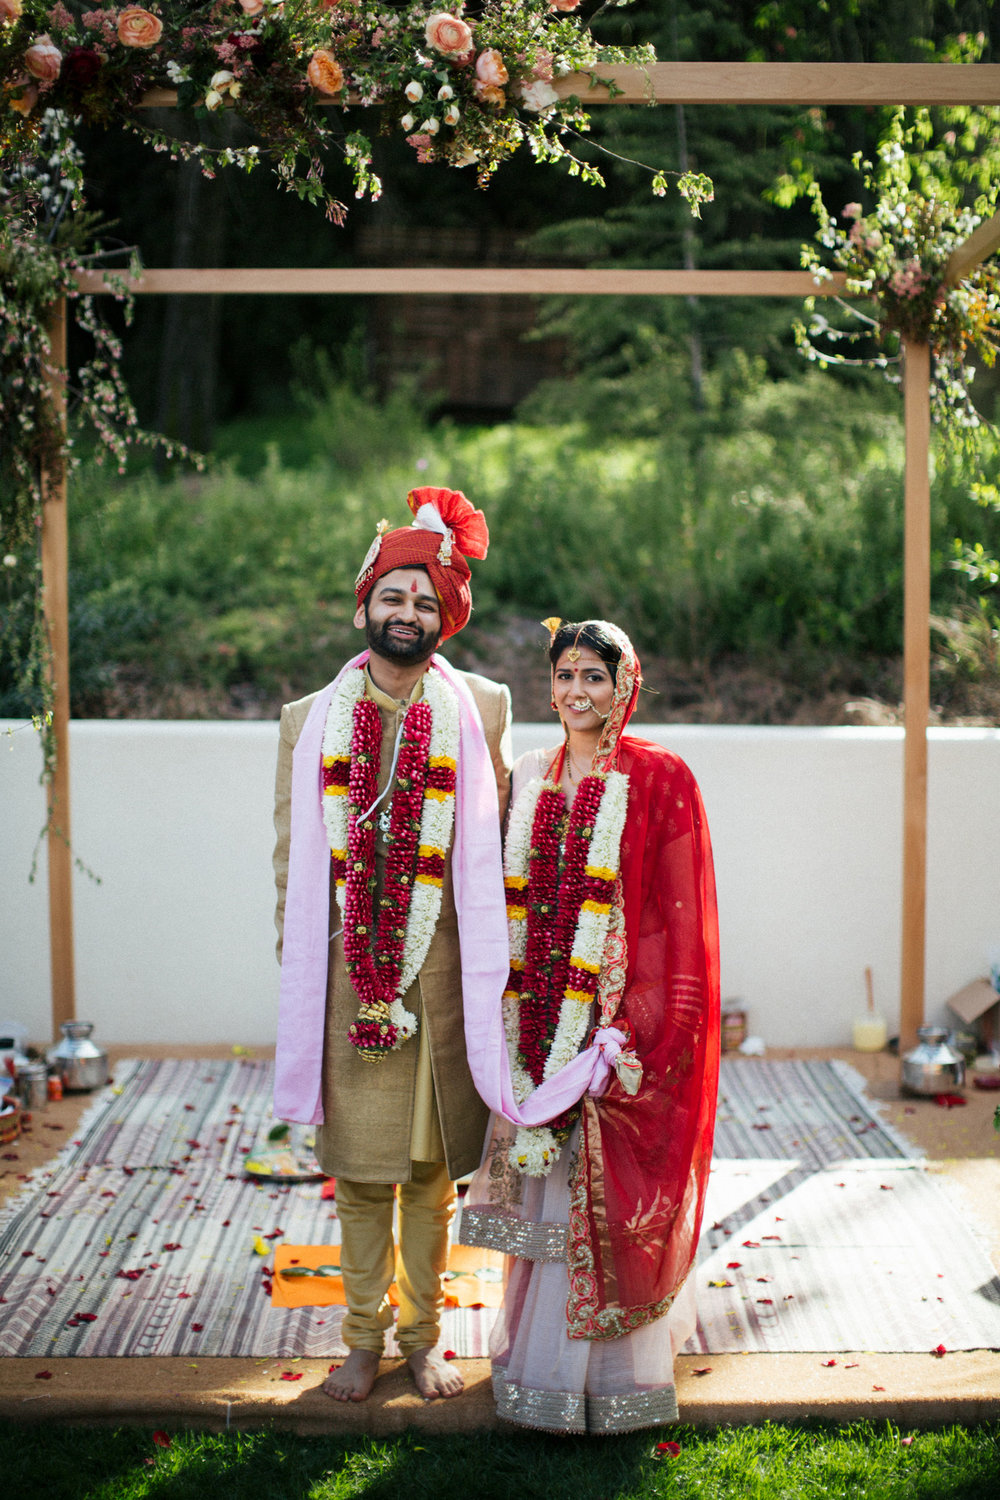 anu_maneesh_alec_vanderboom_Indian_wedding_photography-0115.jpg